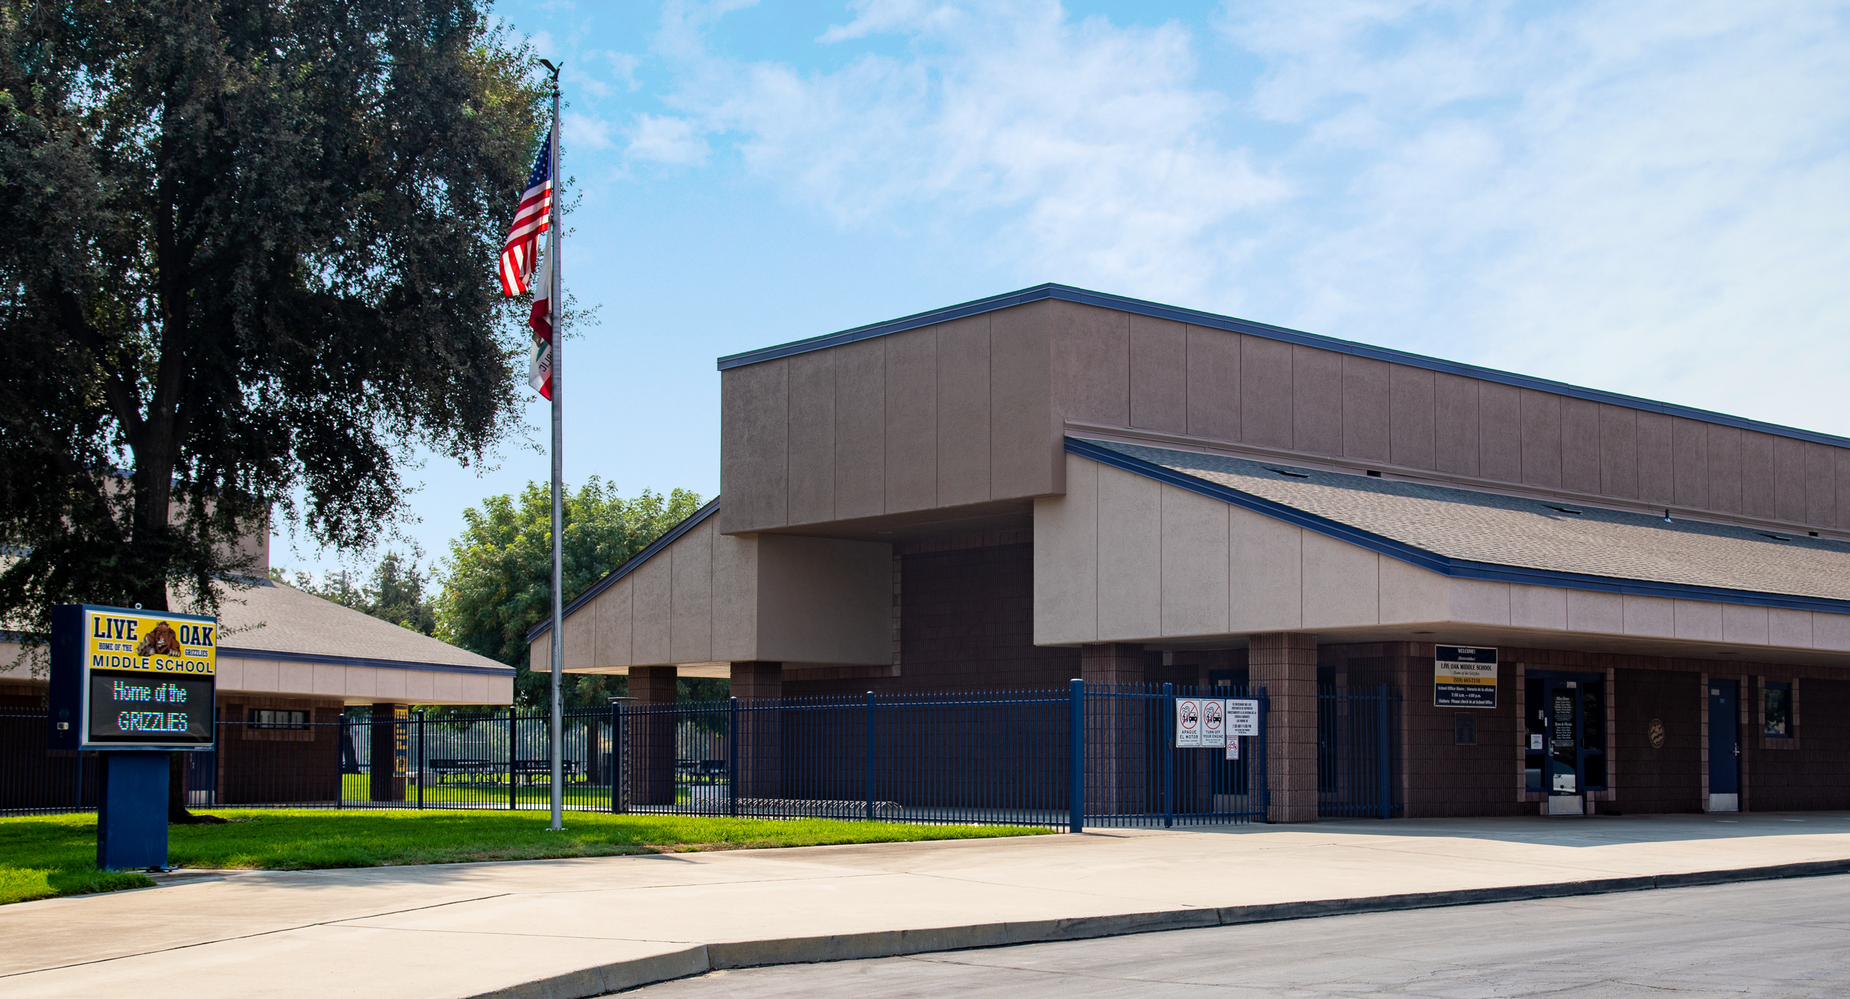 Live Oak Middle School Office Building